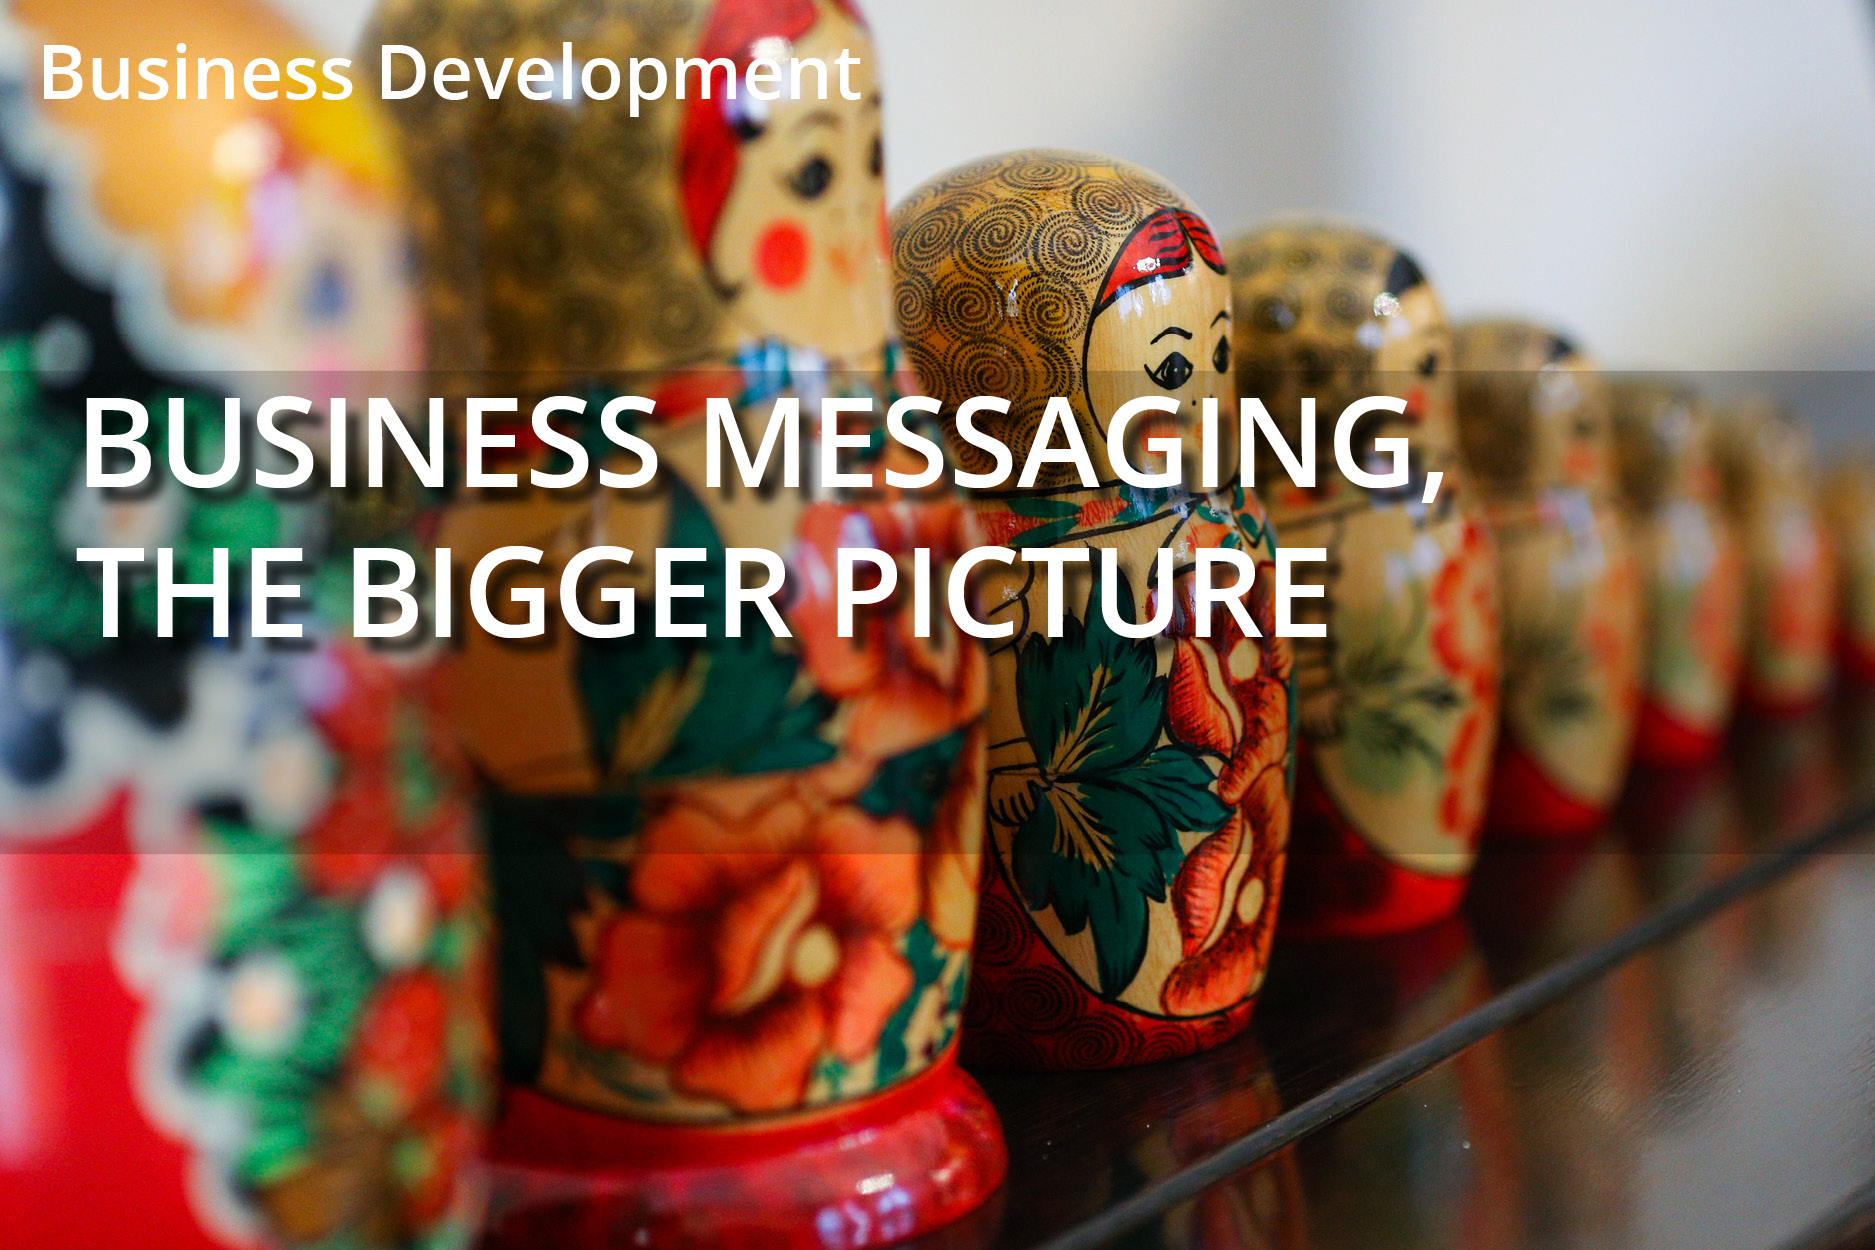 Business Messaging, The Bigger Picture